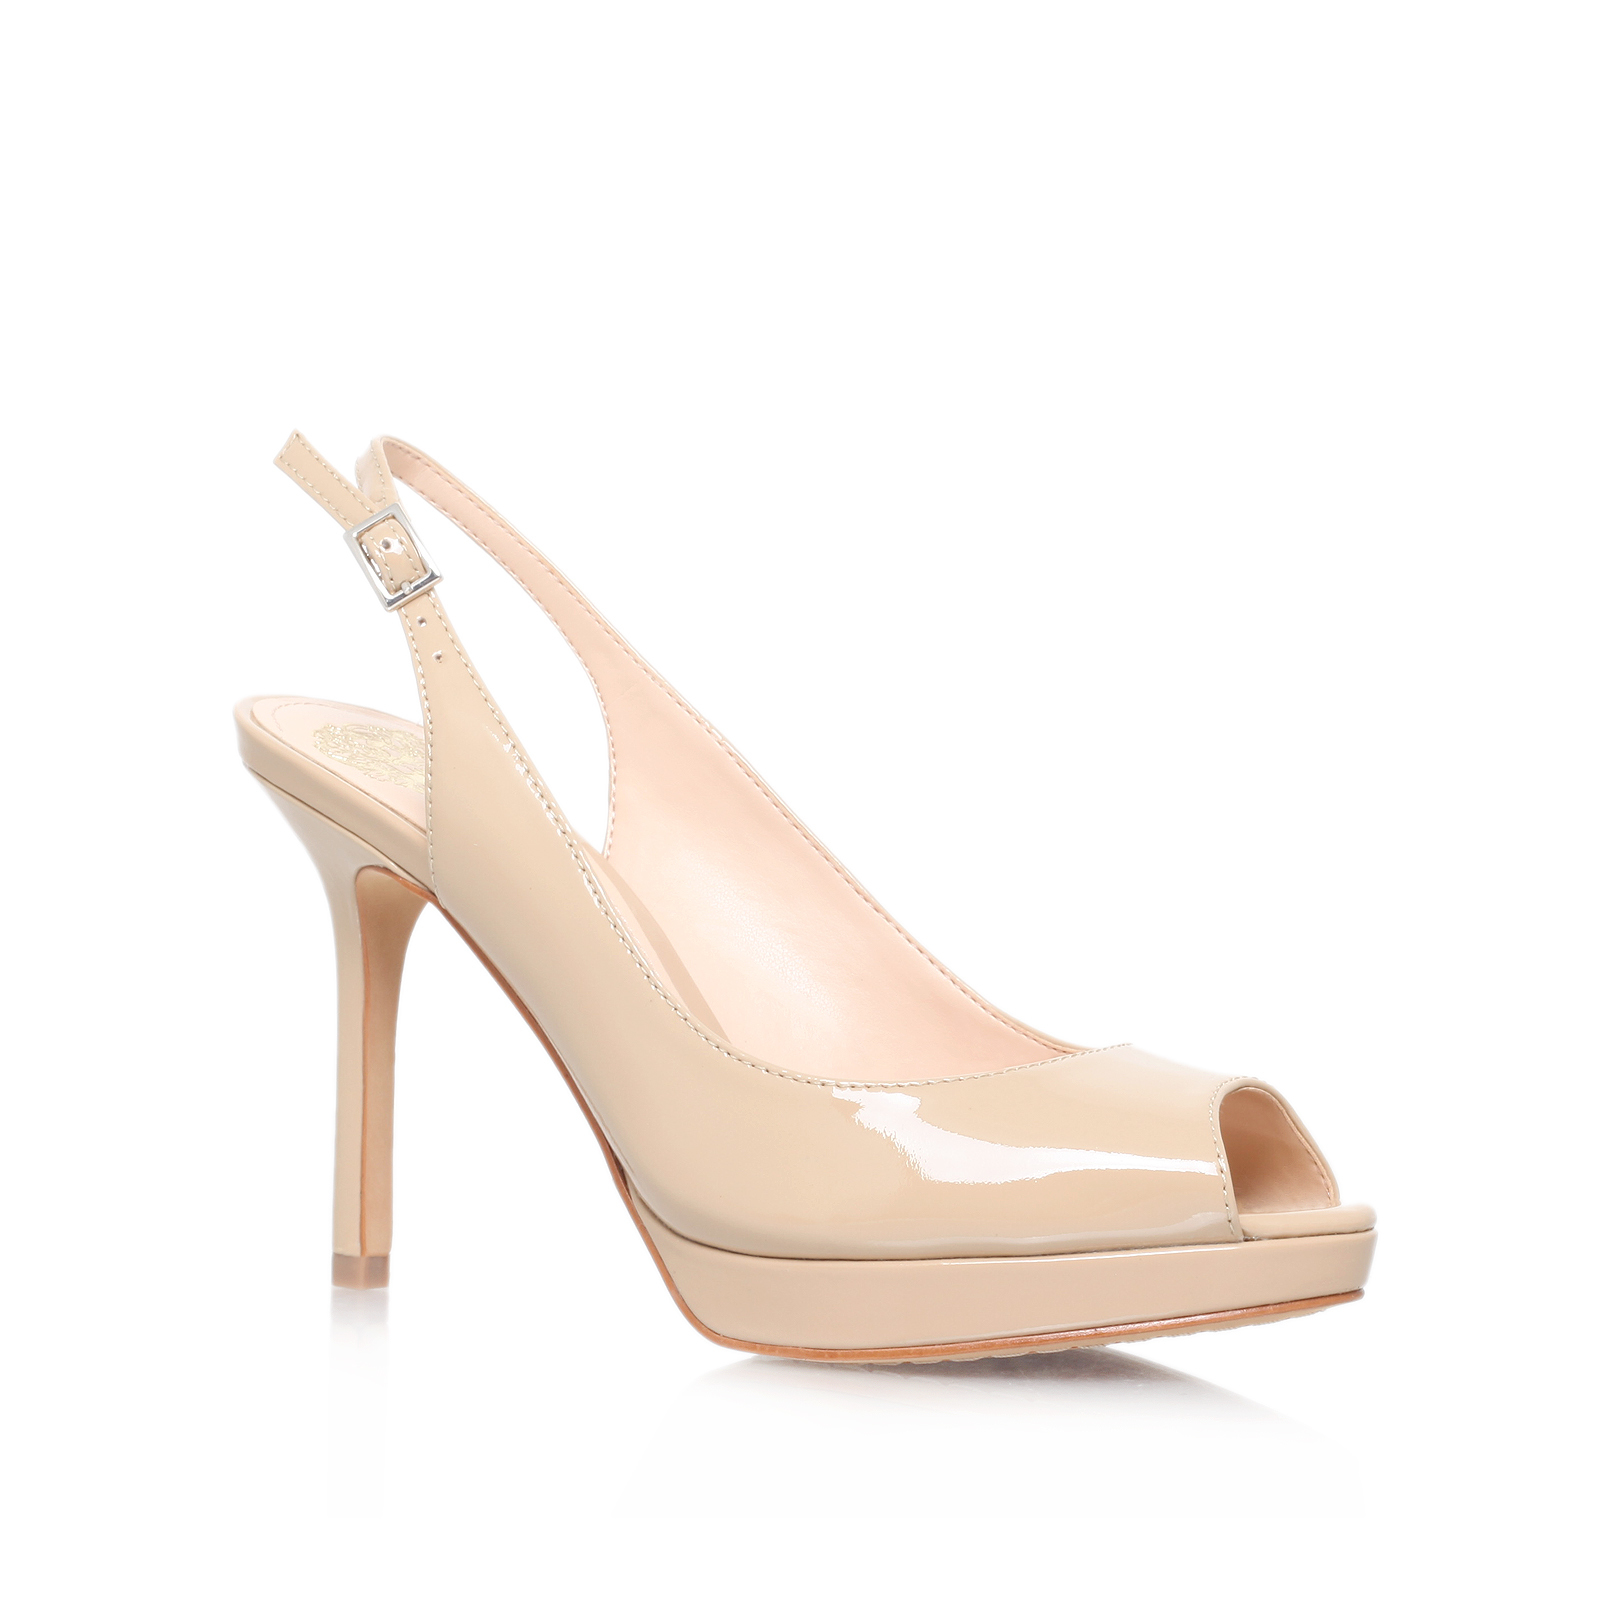 87d8fe9287 Vince Camuto | CAVI Nude High Heel Occasion Shoes by VINCE CAMUTO